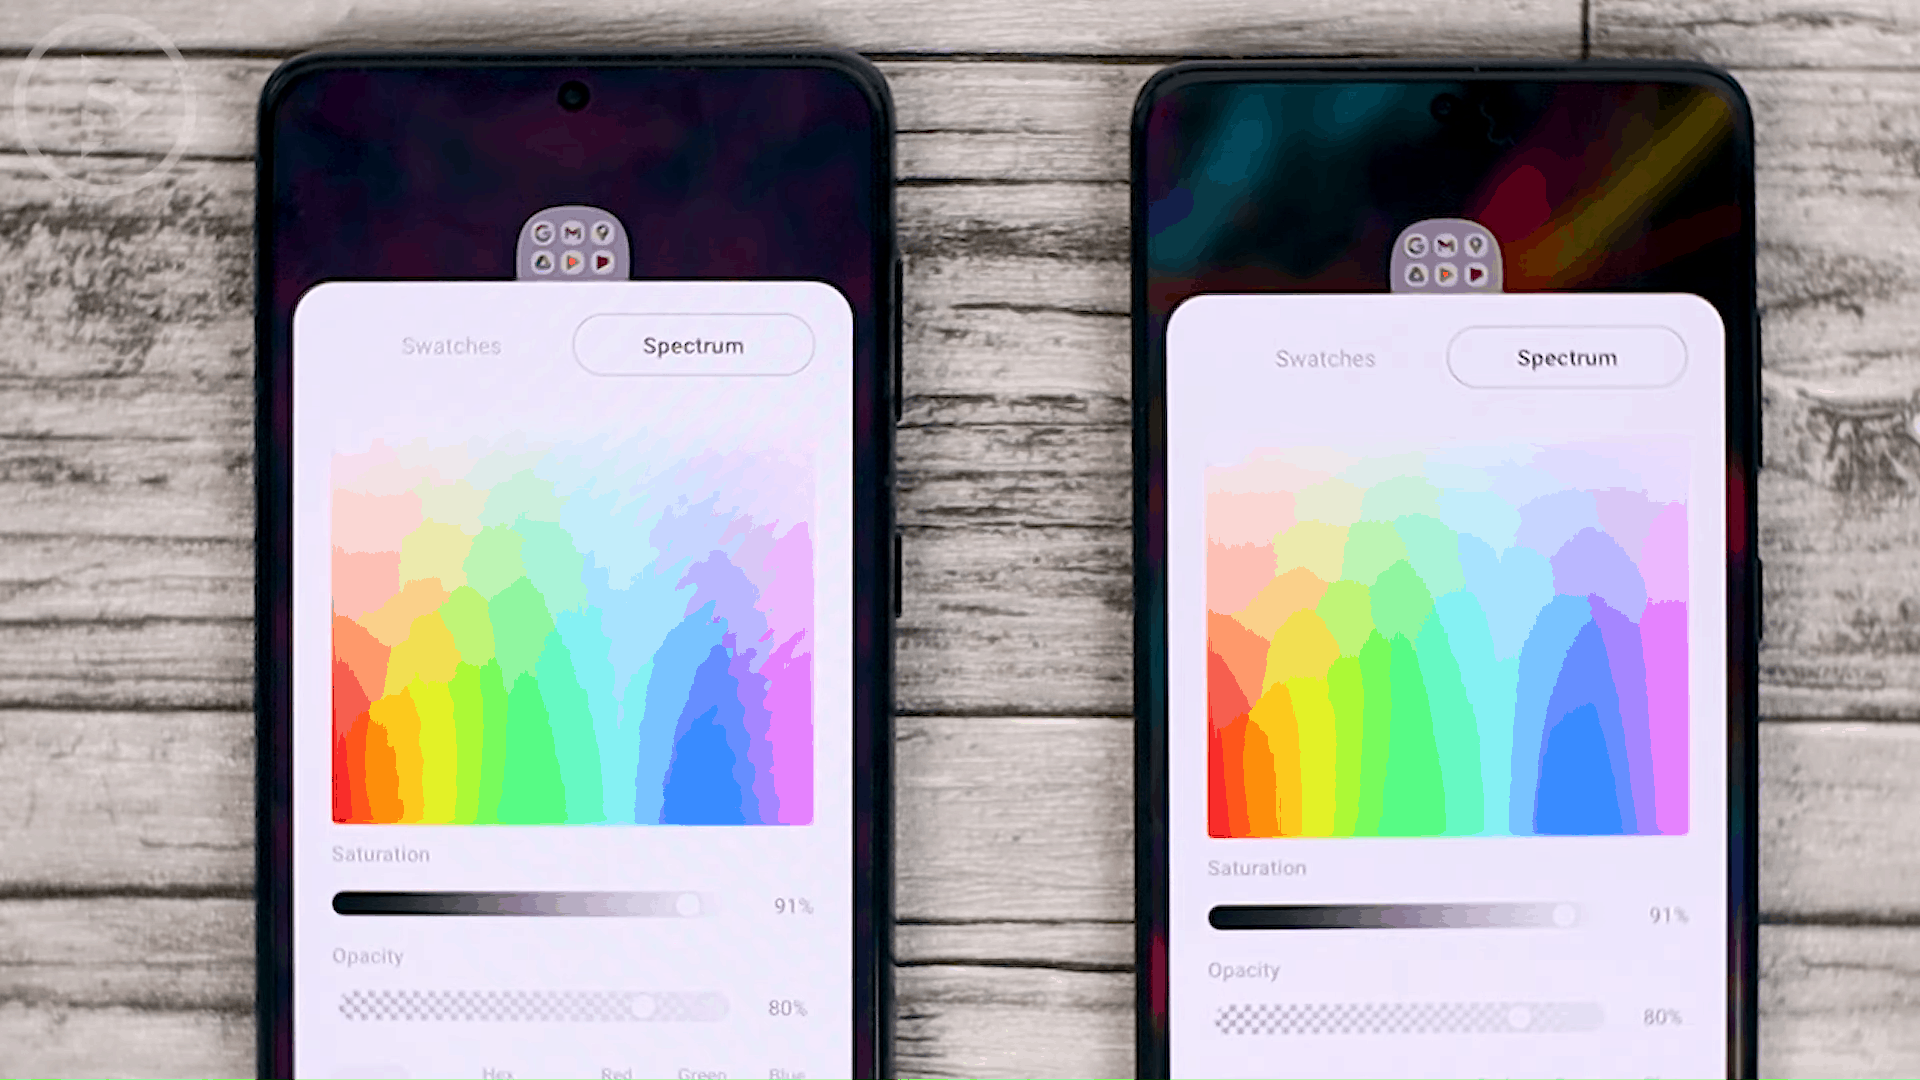 New Folder Color Spectrum - One UI 3.1 Features on Samsung S20, S20+, S20 Ultra